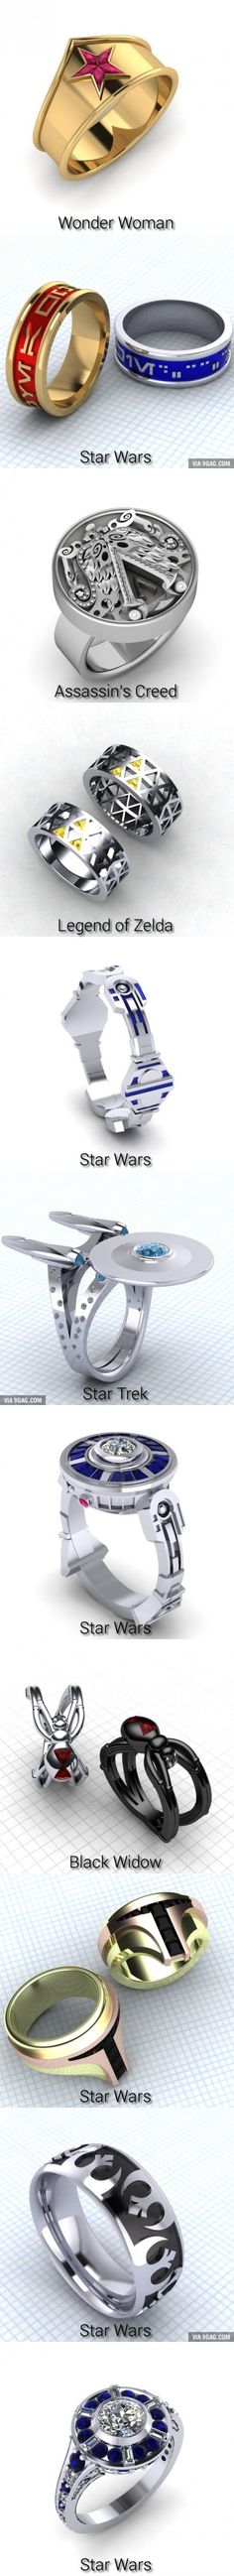 11 Fabulously Geeky Wedding Rings